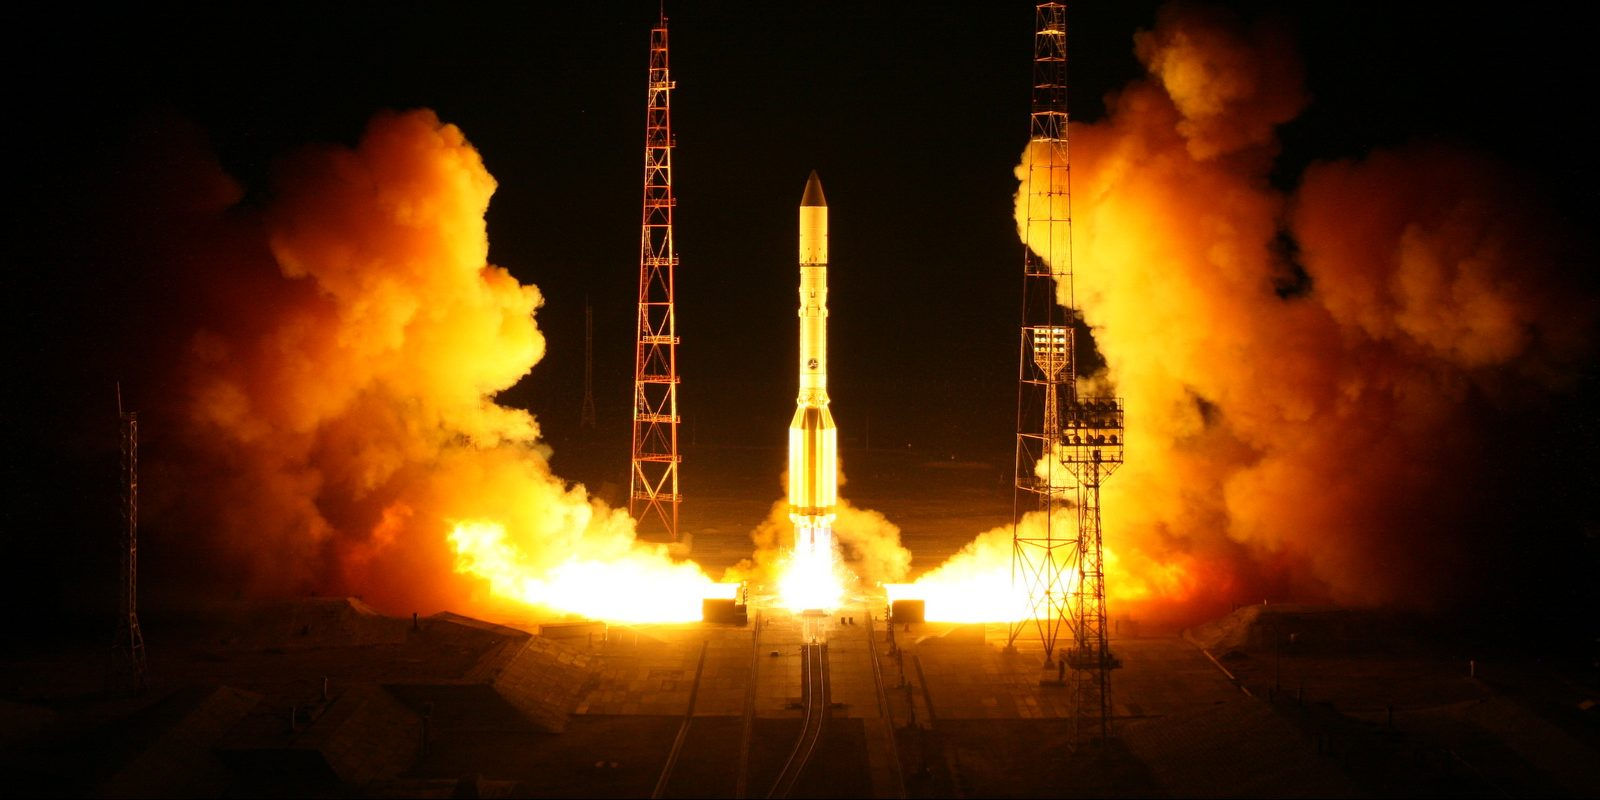 A file photo of a previous Proton-M launch. On Dec. 21, 2018, a Proton-M rocket sent the Blagovest-13L military communications satellite into a geostationary orbit. Photo Credit: Roscosmos